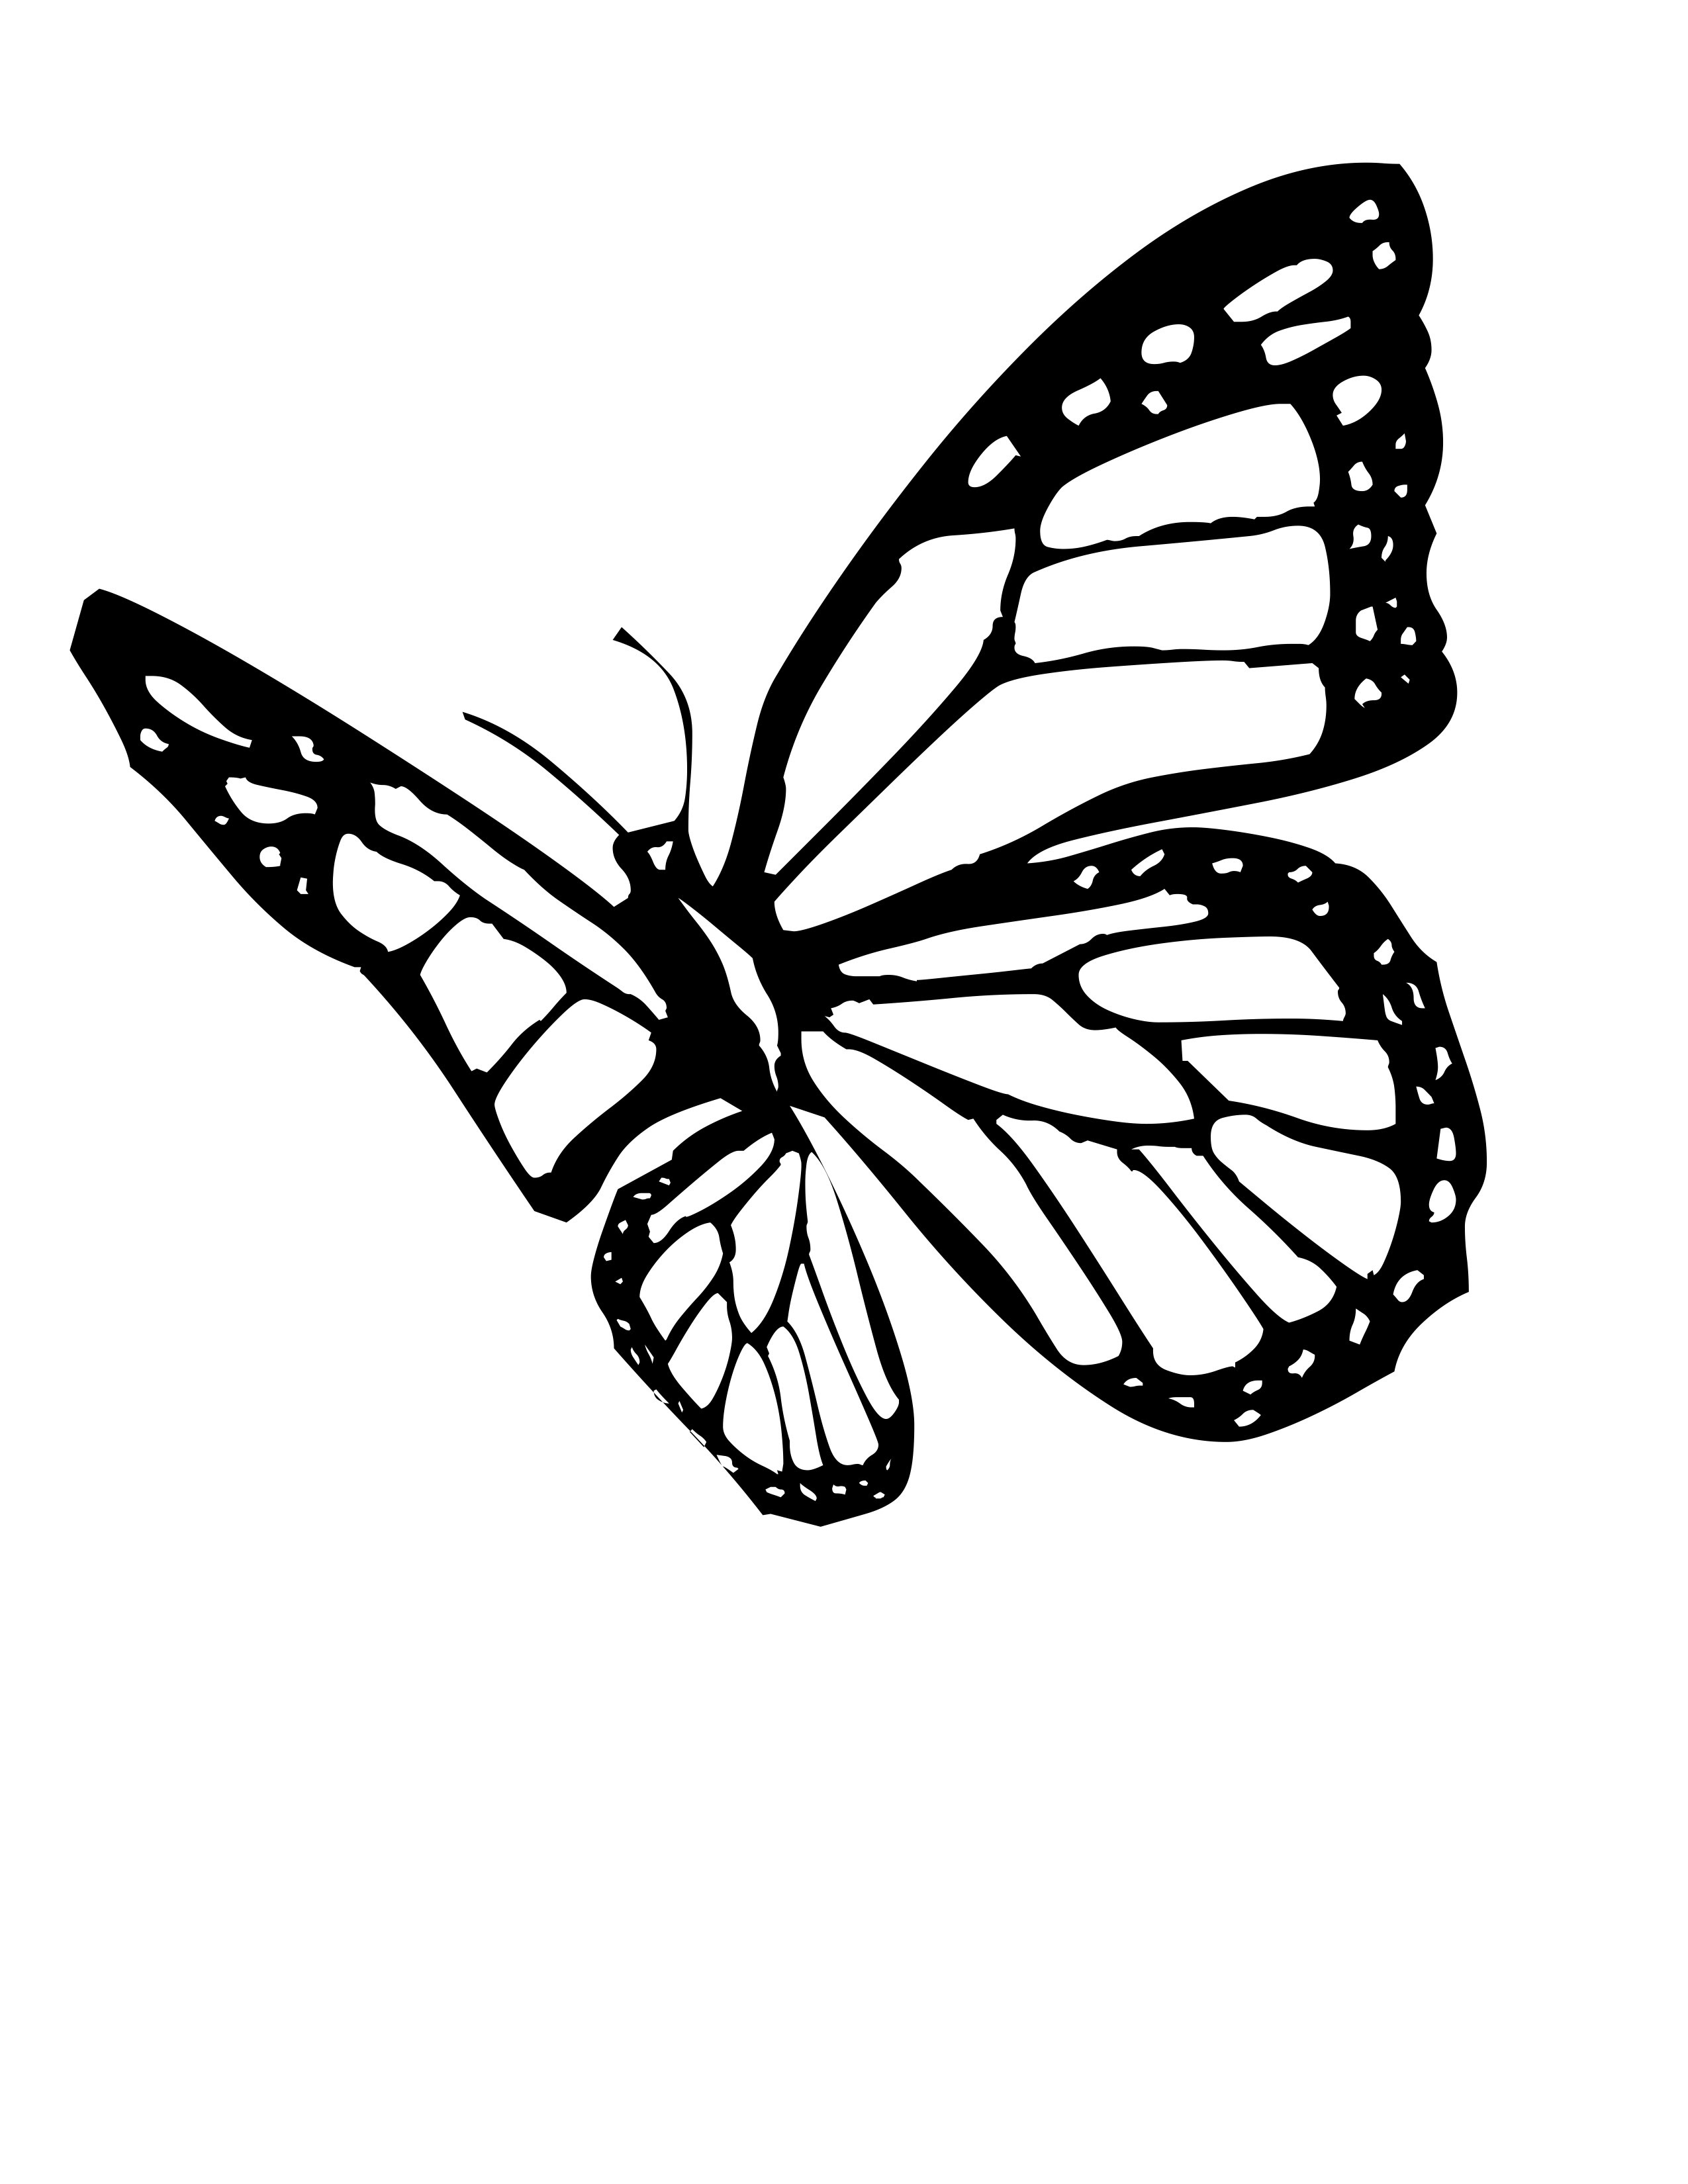 Download Free Monarch Butterfly Drawing, Download Free Clip Art, Free Clip Art on Clipart Library